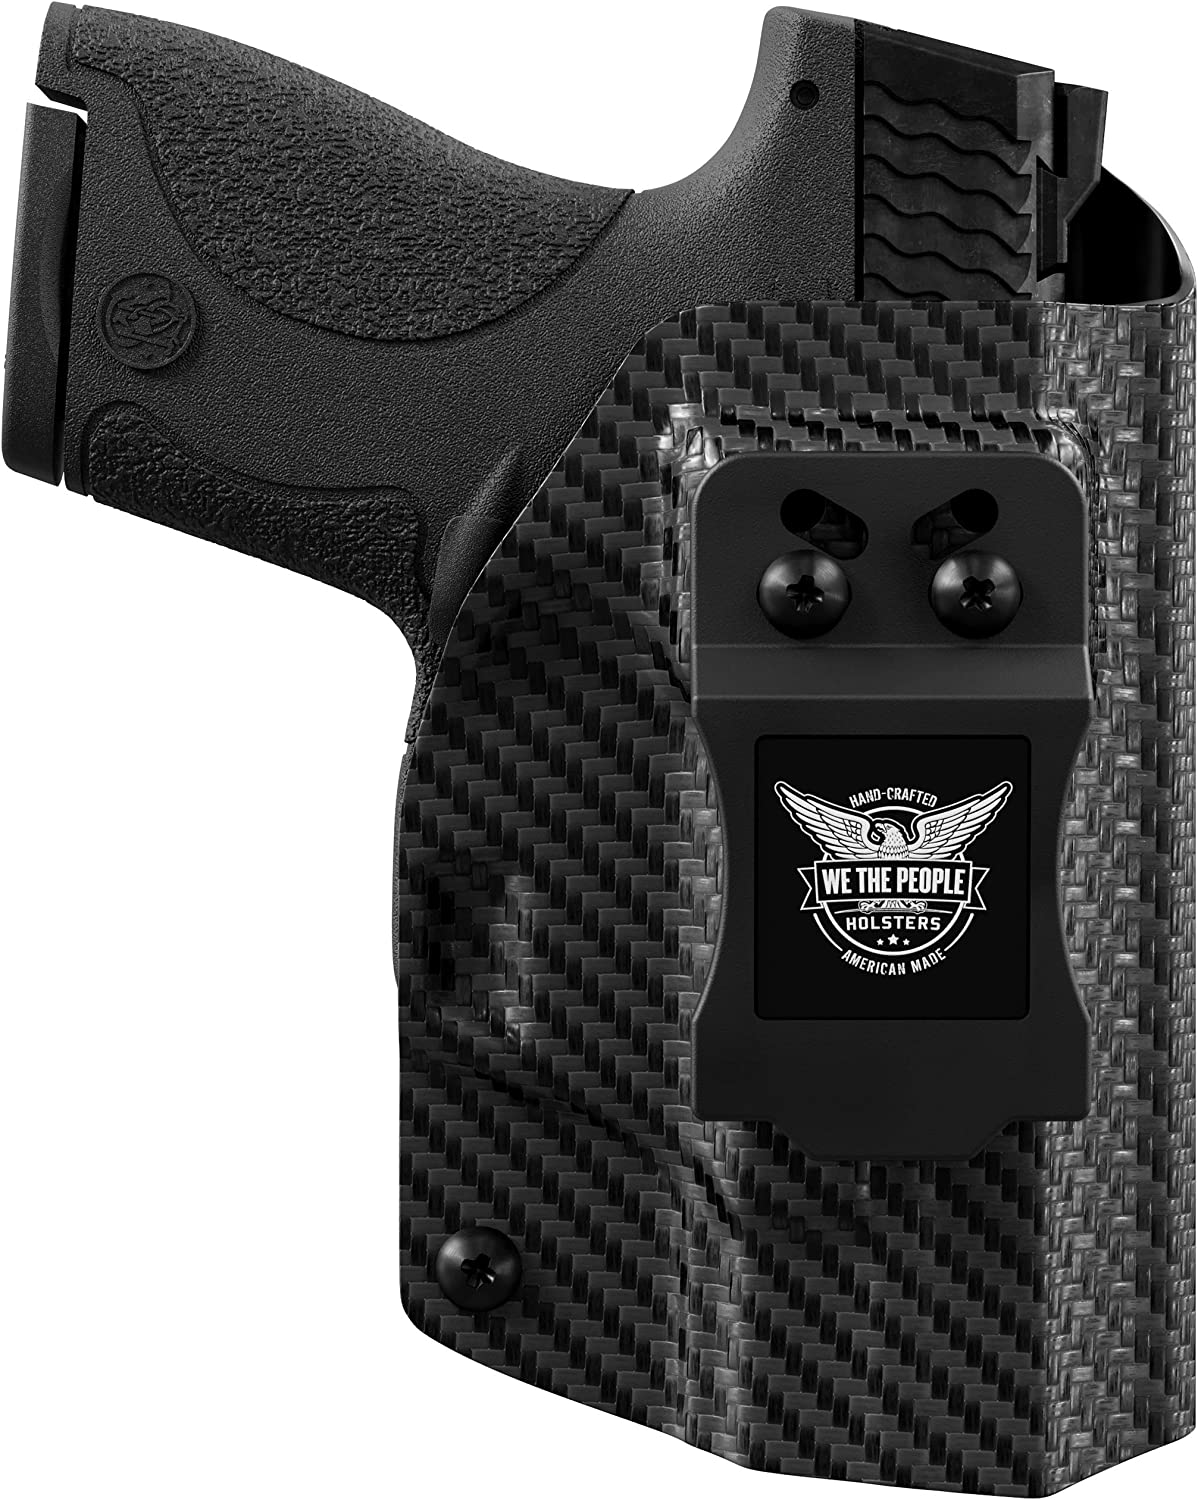 We The People Holsters Bombing free shipping - Fiber Waistband Conceal Carbon Inside gift